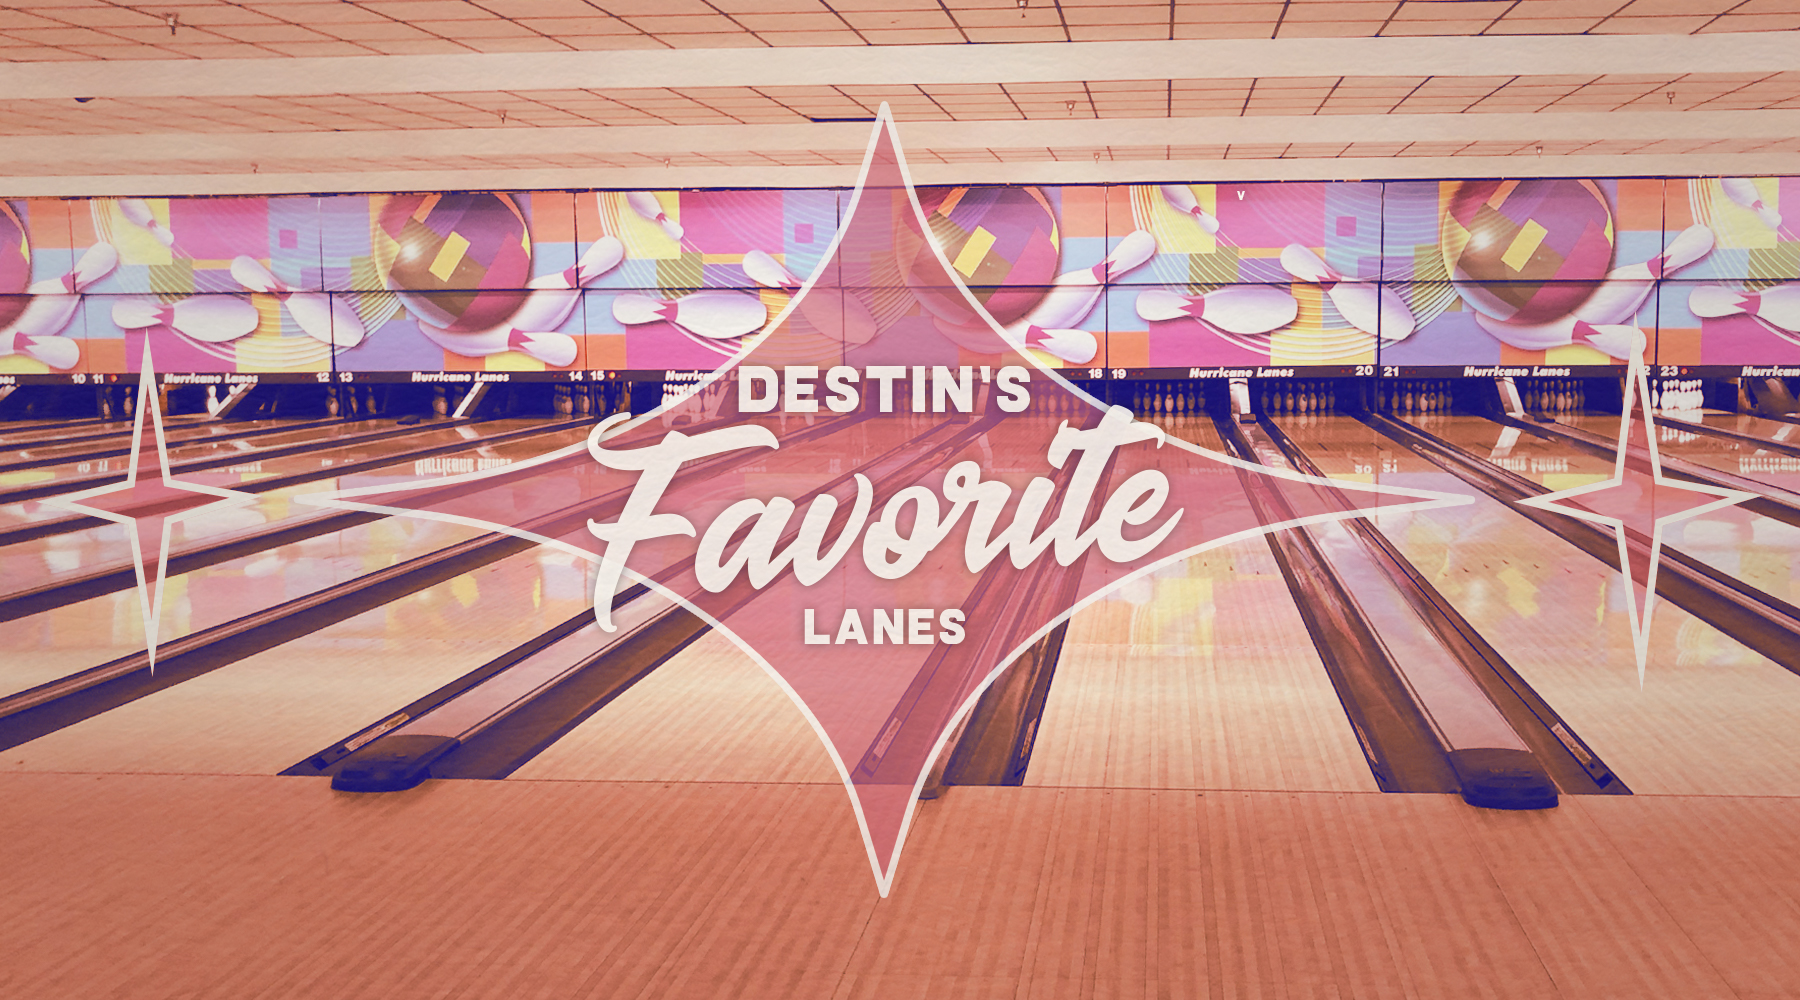 A shot of Hurricane Lanes with the words Destin's Favorite Lanes